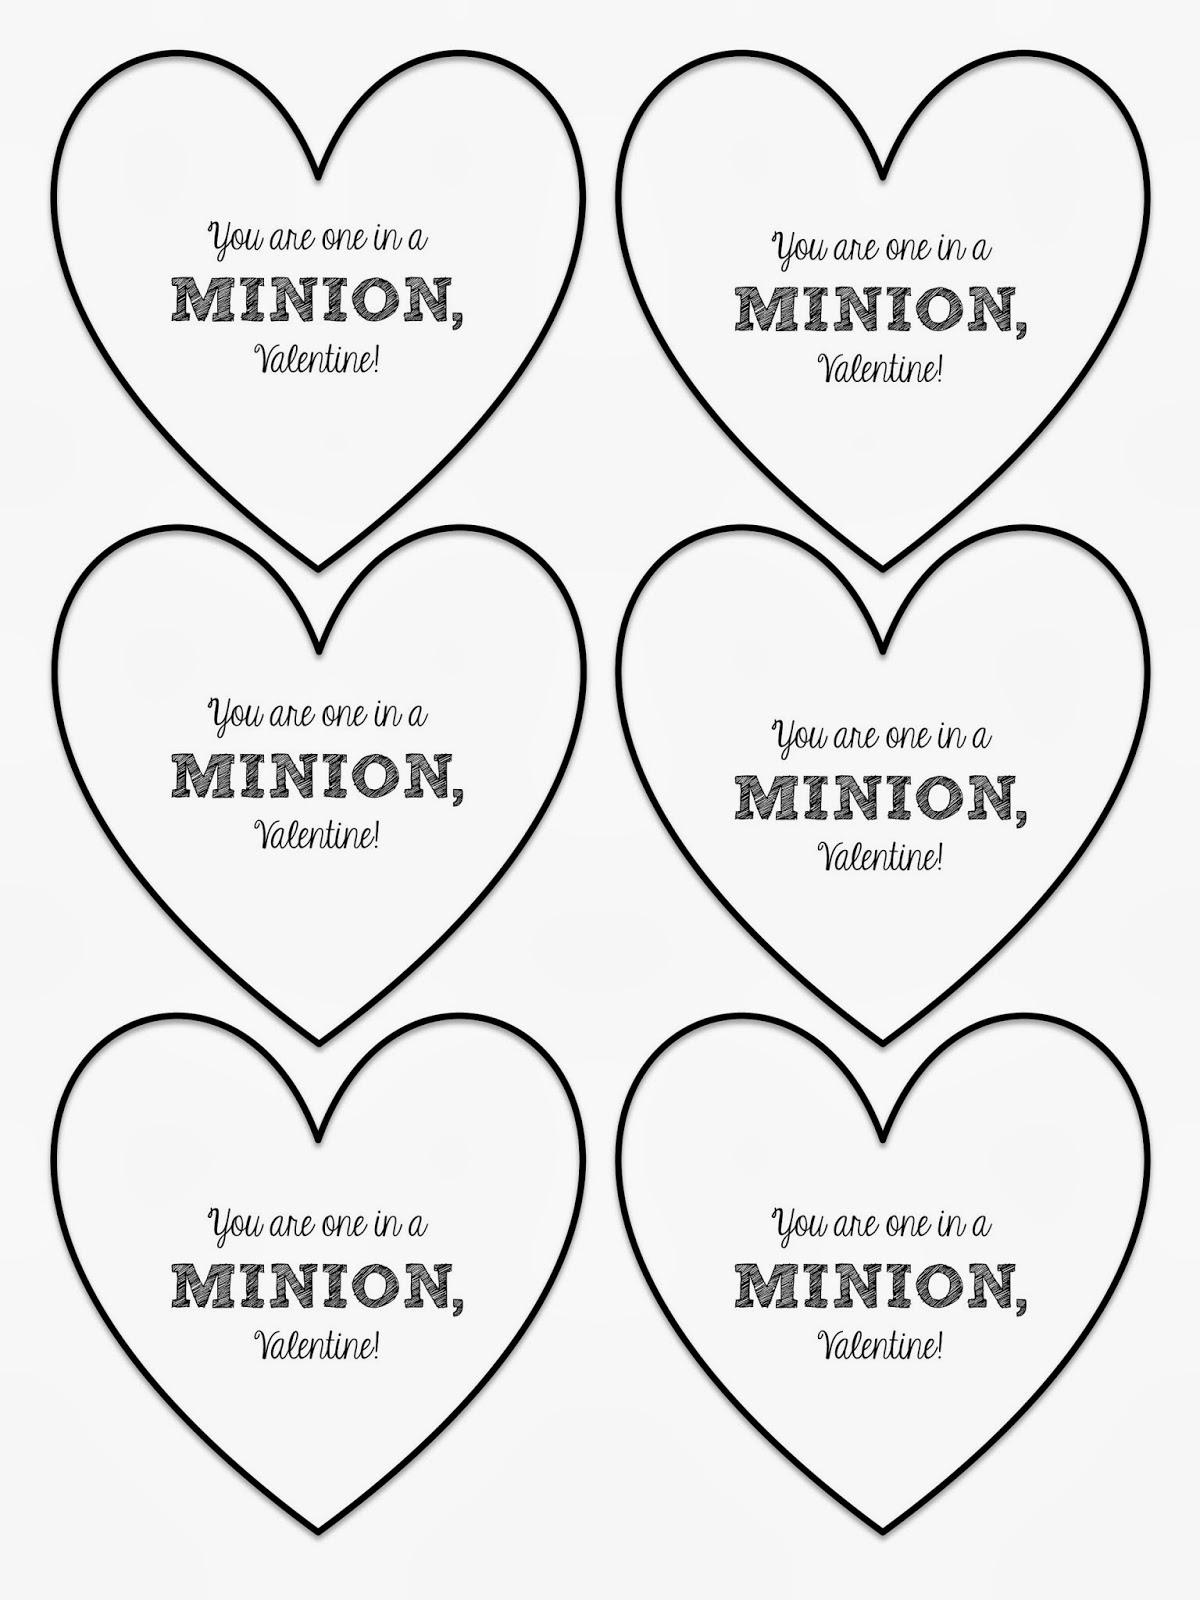 Magic image in you re one in a minion printable